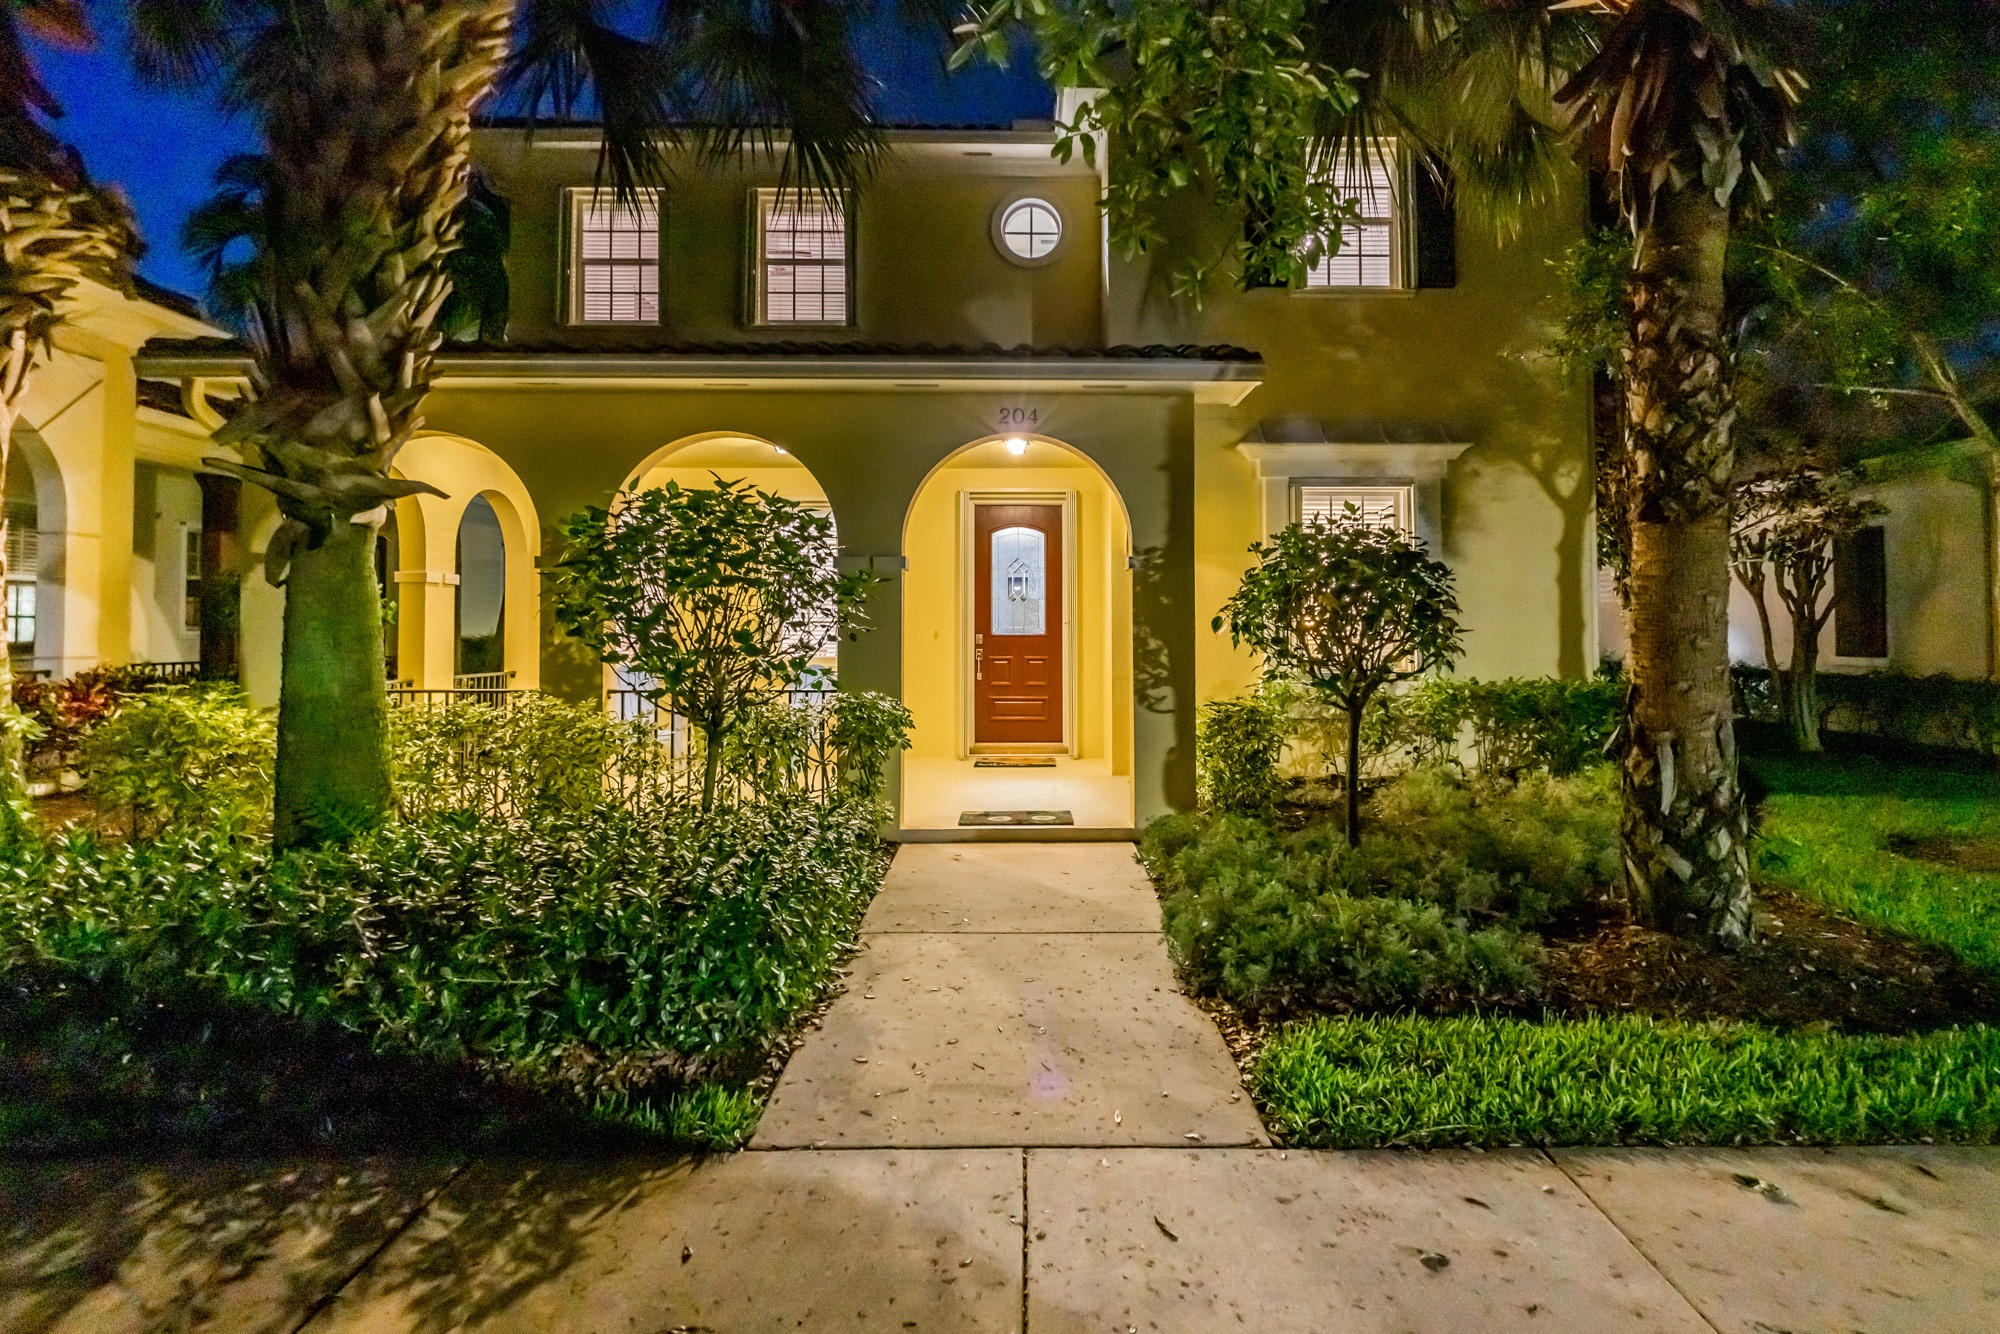 204 Florence Drive, Jupiter, Florida 33458, 4 Bedrooms Bedrooms, ,3 BathroomsBathrooms,A,Single family,Florence,RX-10518027